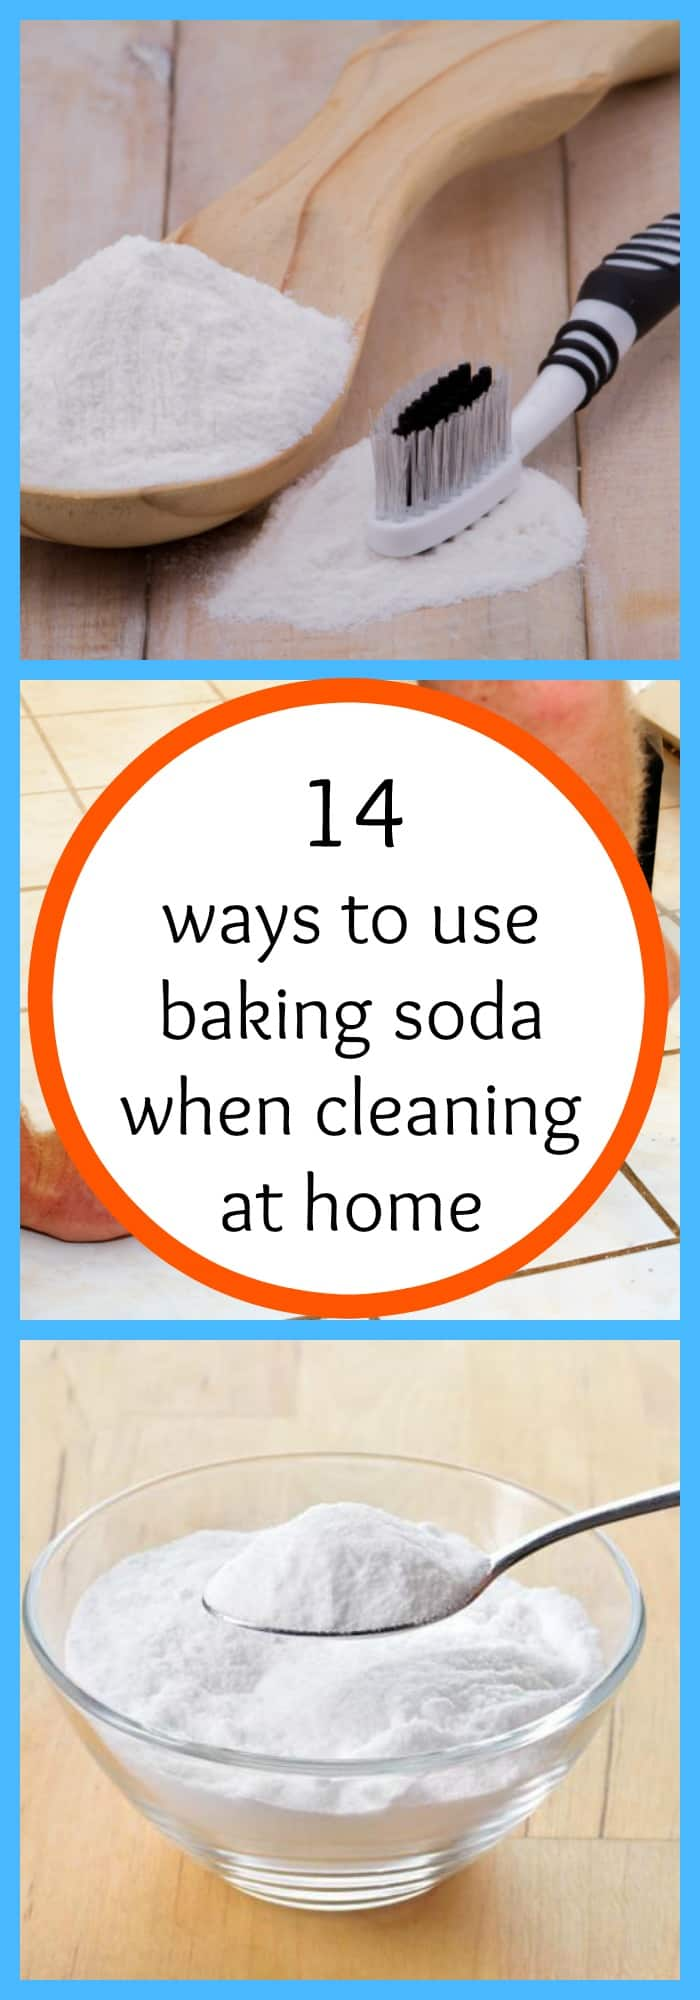 14 ways to use baking soda when cleaning at home - Things never clean baking soda ...